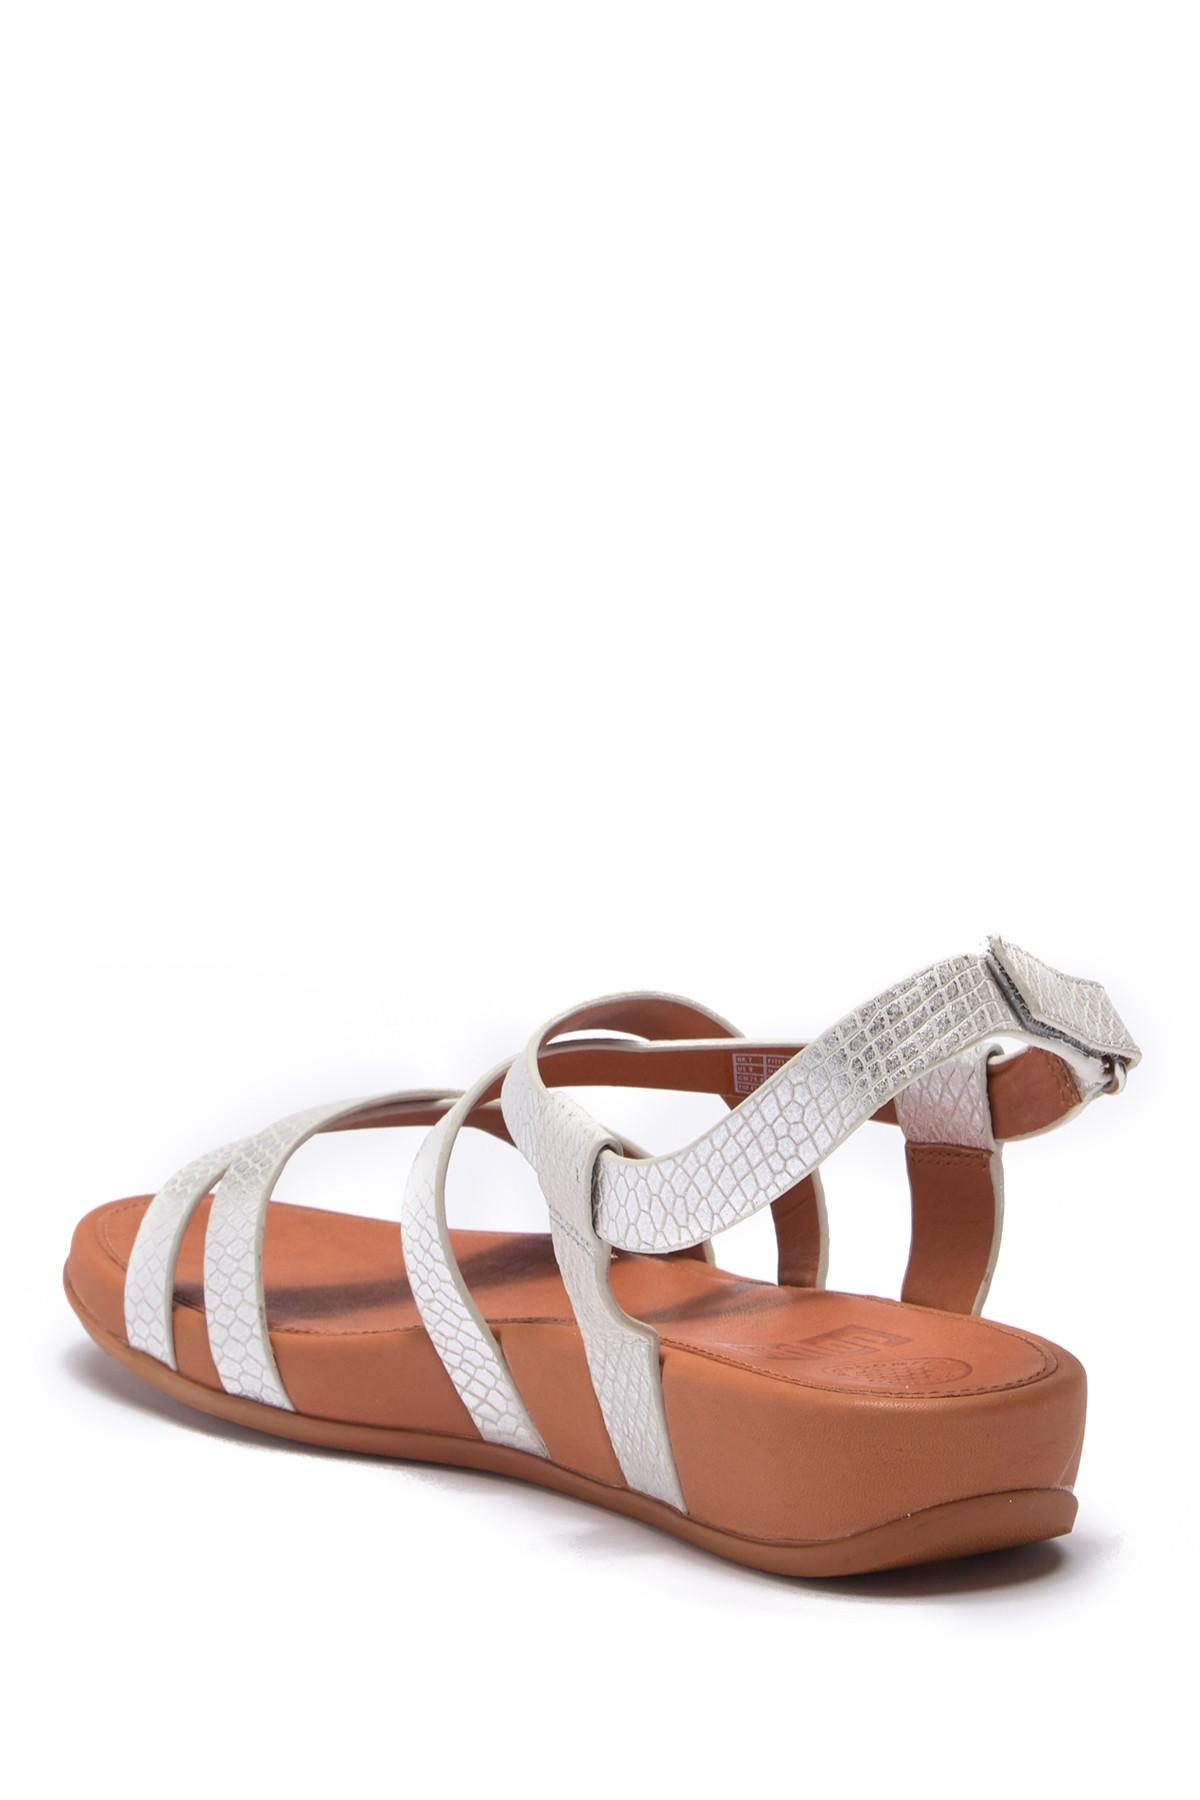 7f421e69a0d2 Fitflop - Metallic Lumy Shimmersnake Embossed Sandal - Lyst. View fullscreen